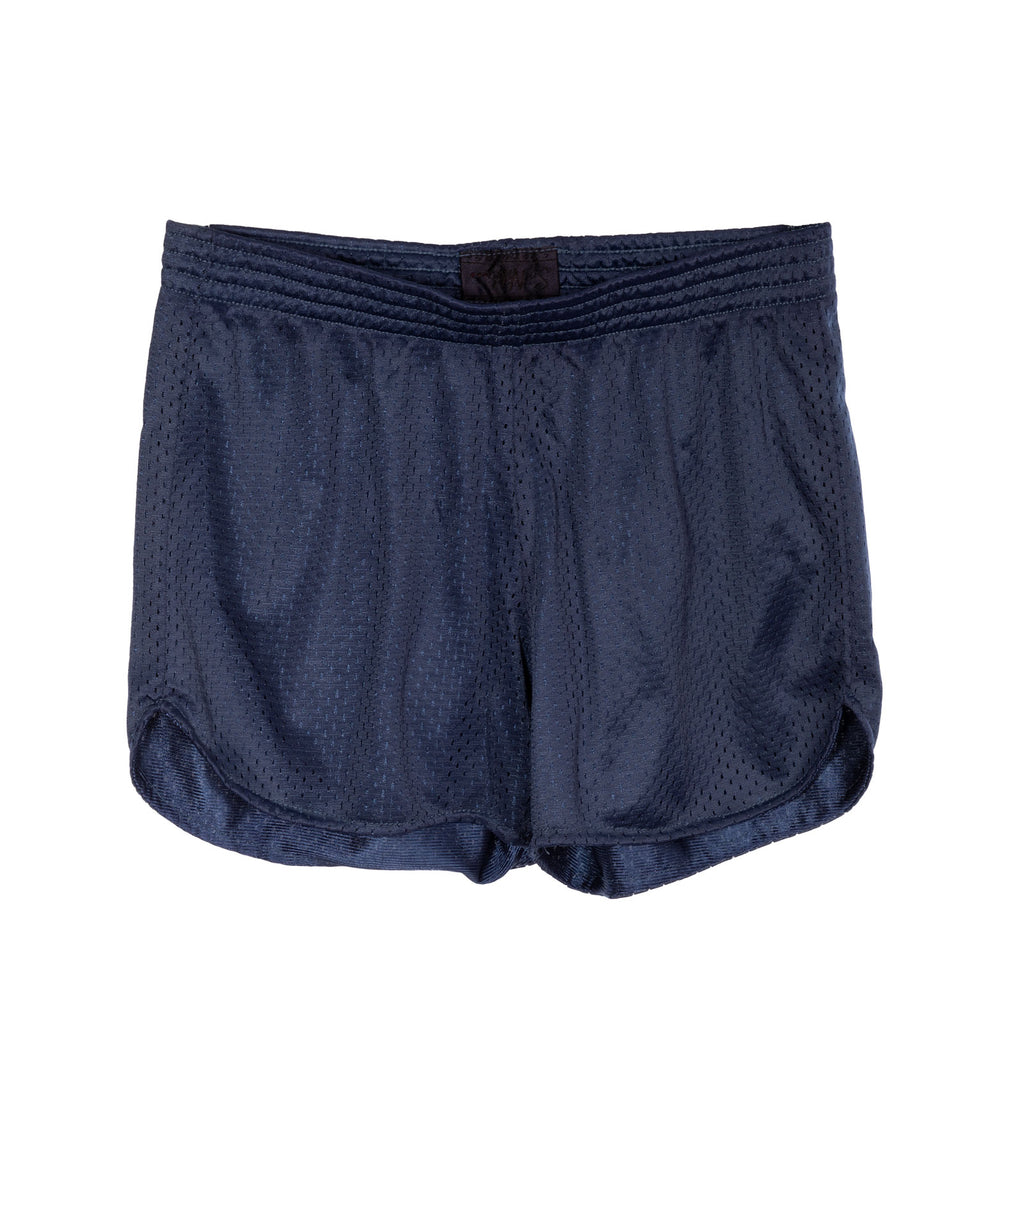 So Nikki Girls Navy Mesh Shorts